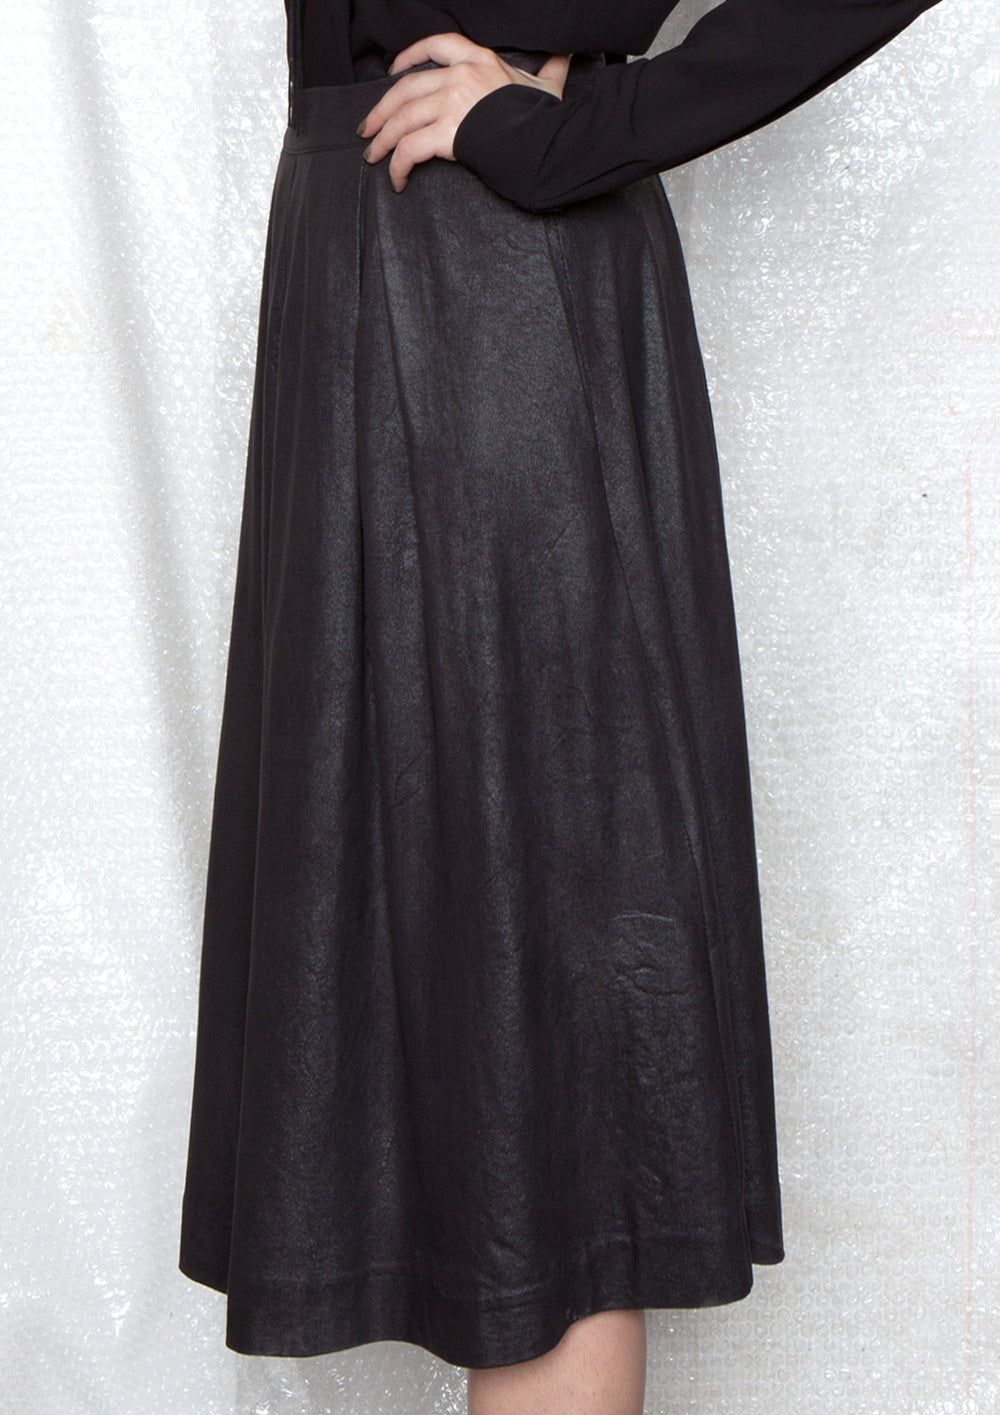 vegan leather black high - waisted skirt with pockets